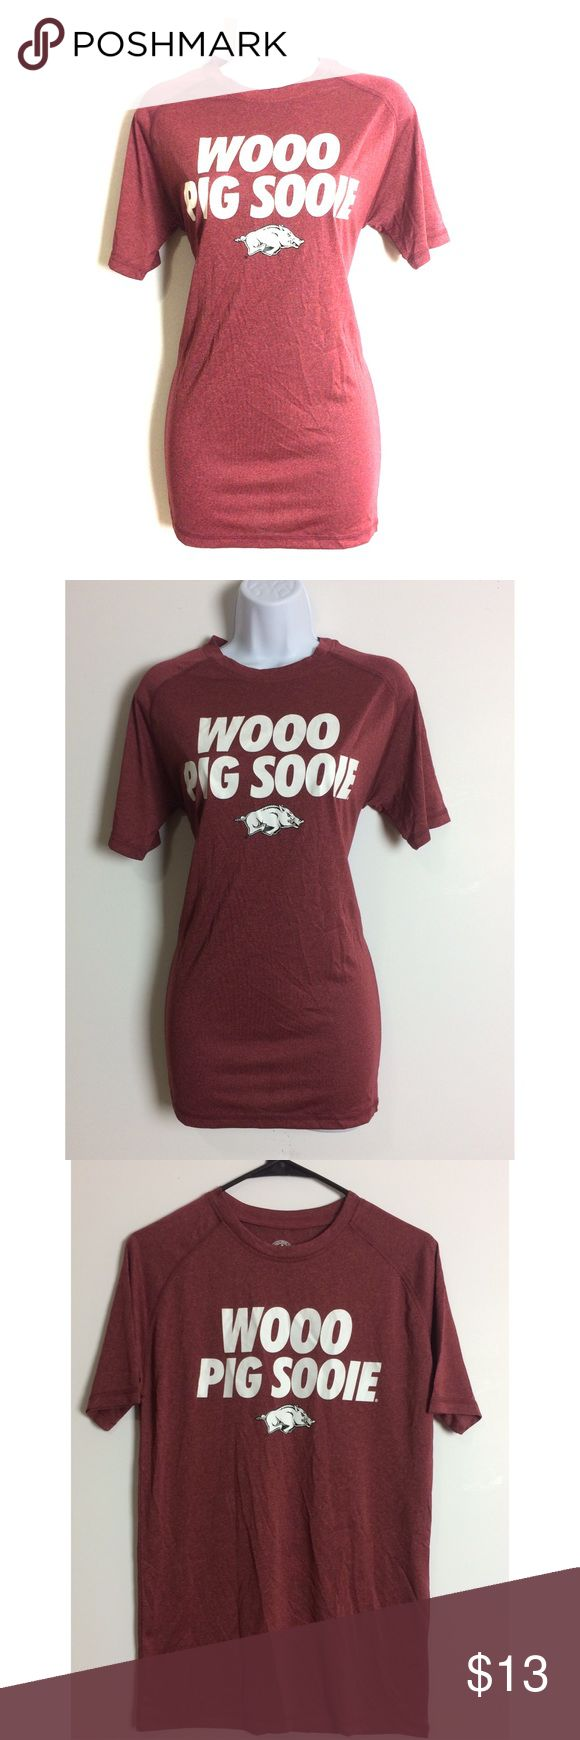 😎Arkansas Razorbacks Graphic Tee😎 Love this shirt super cute, stylish and trendy! NWOT! PRICE IS NOT FIRM OFFERS ACCEPTED UPON REQUEST...😊 Measurements: Armpit to Armpit: Length:  This listing is BRAND NEW WITHOUT TAGS! Material: Rivalry Threads 91 Tops Tees - Short Sleeve